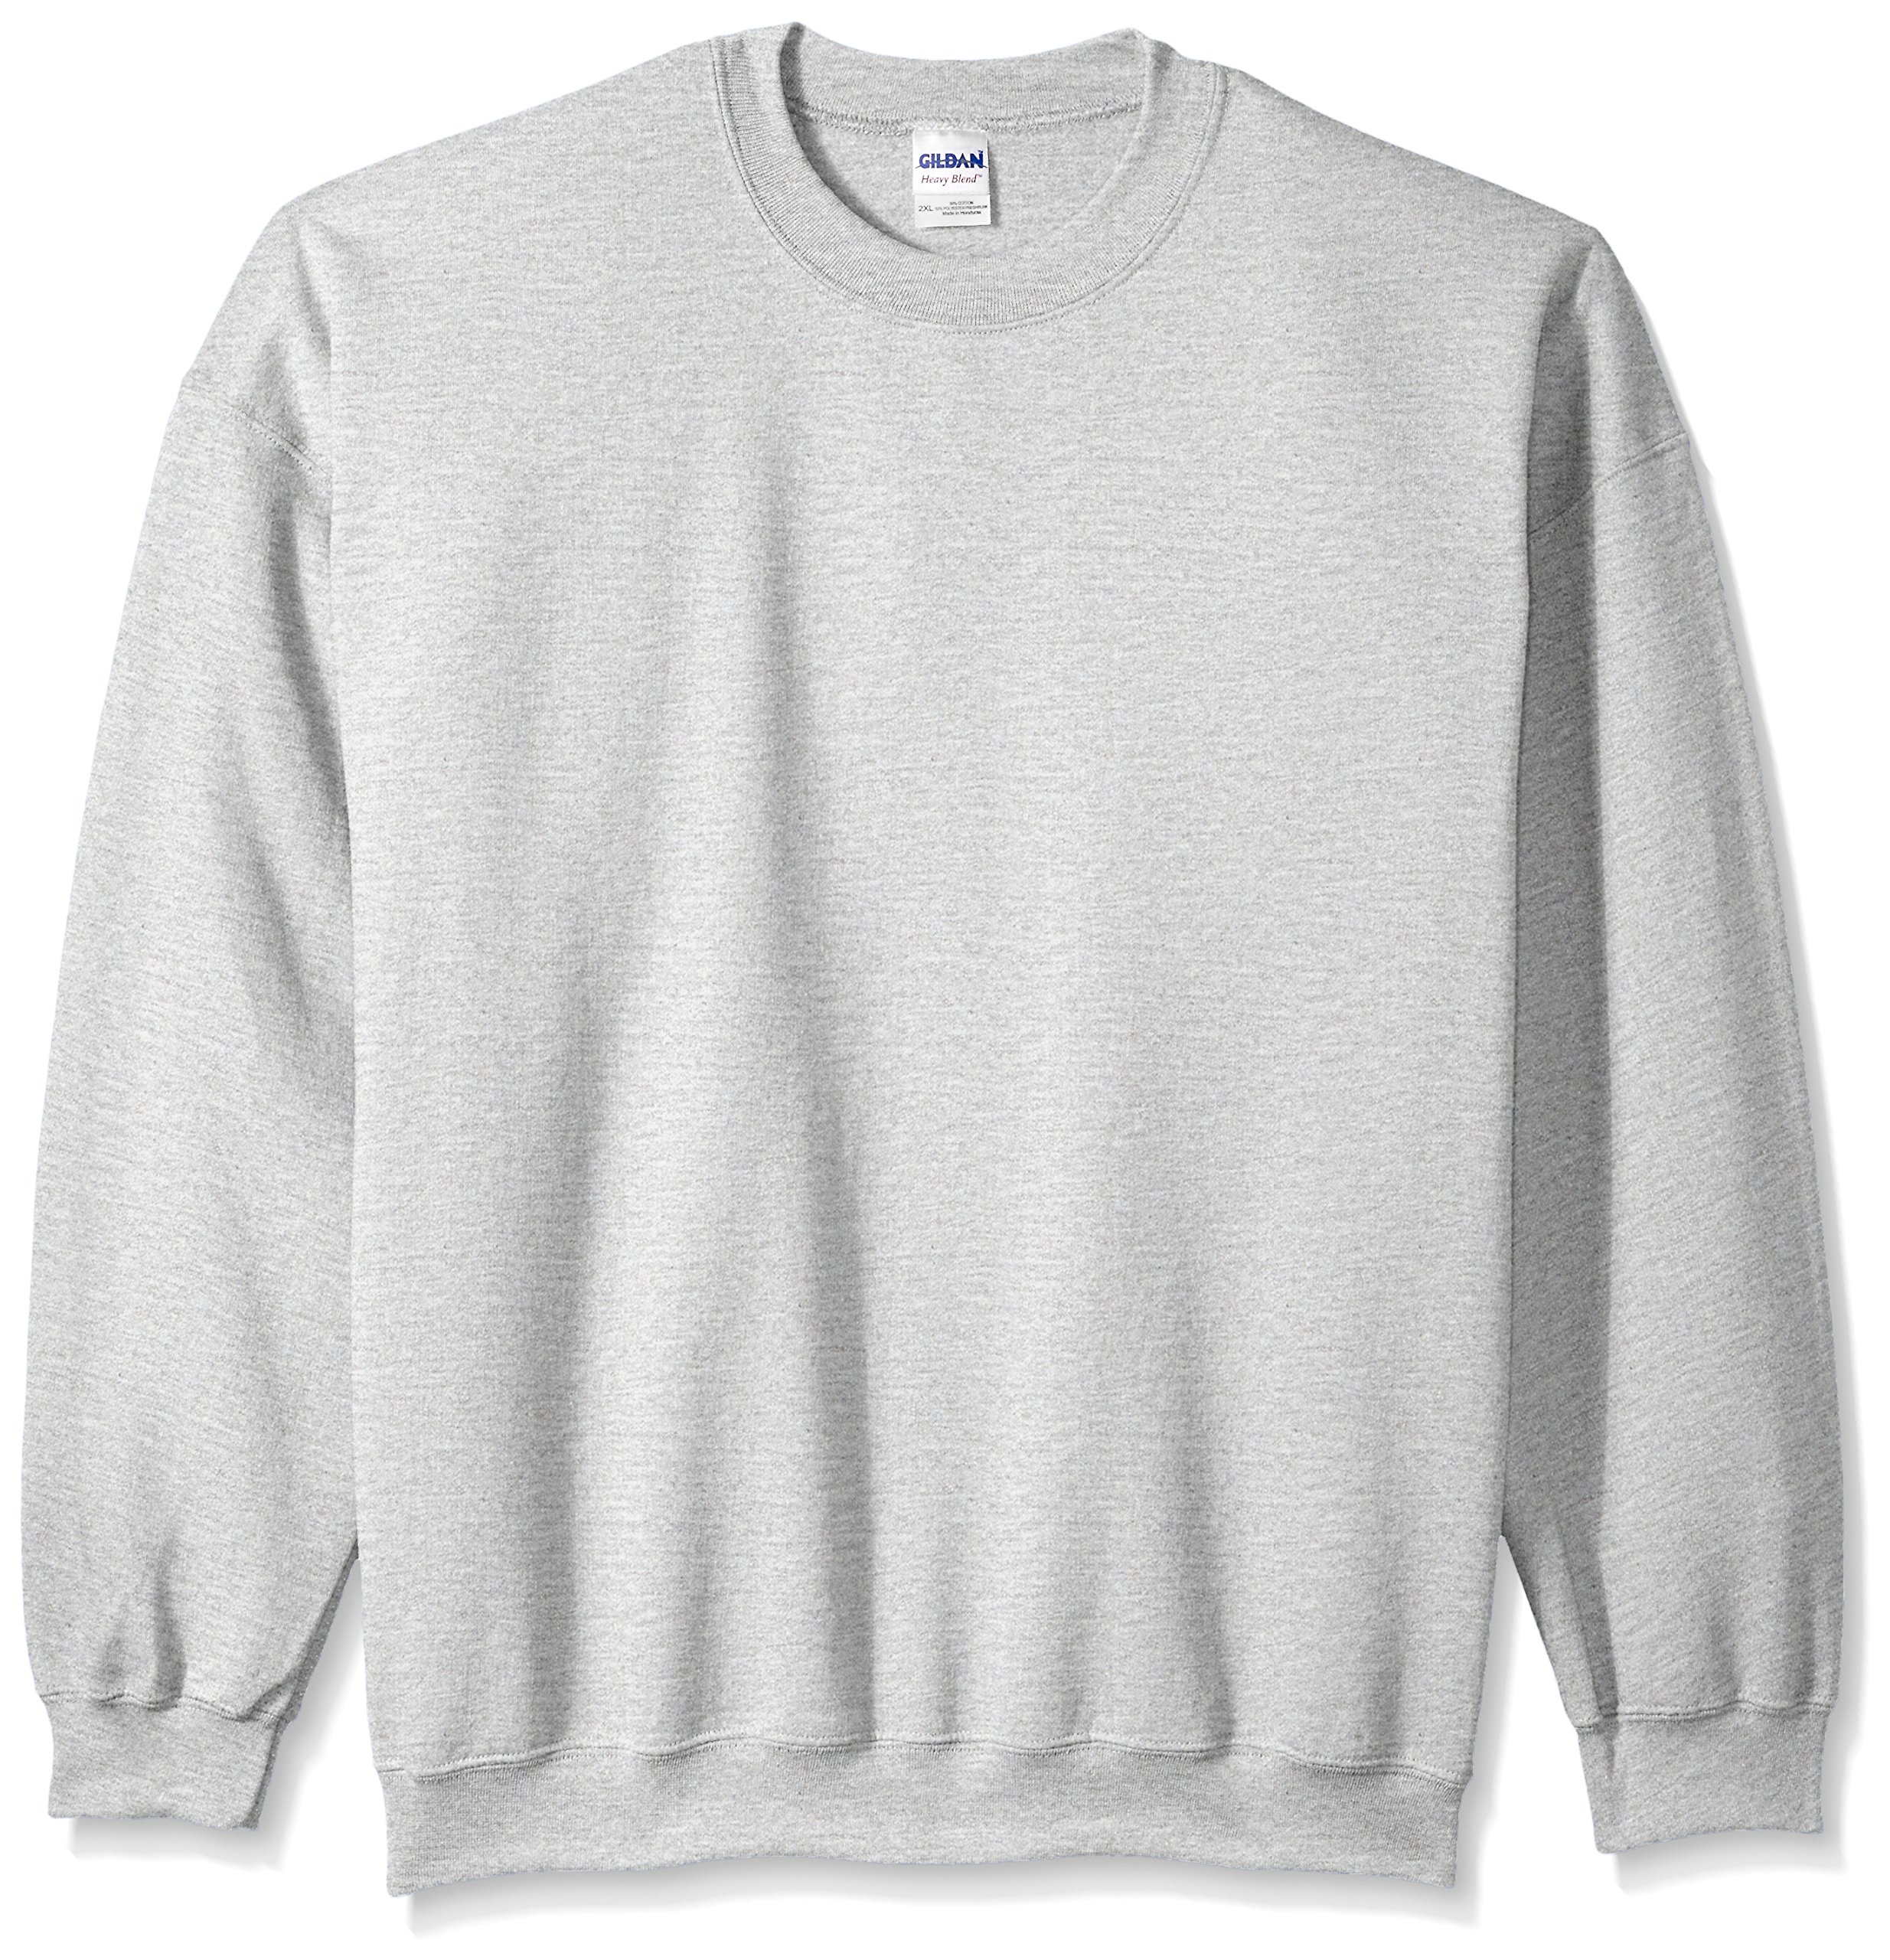 Gildan Men's Heavy Blend Crewneck Sweatshirt - XX-Large - Sport Grey